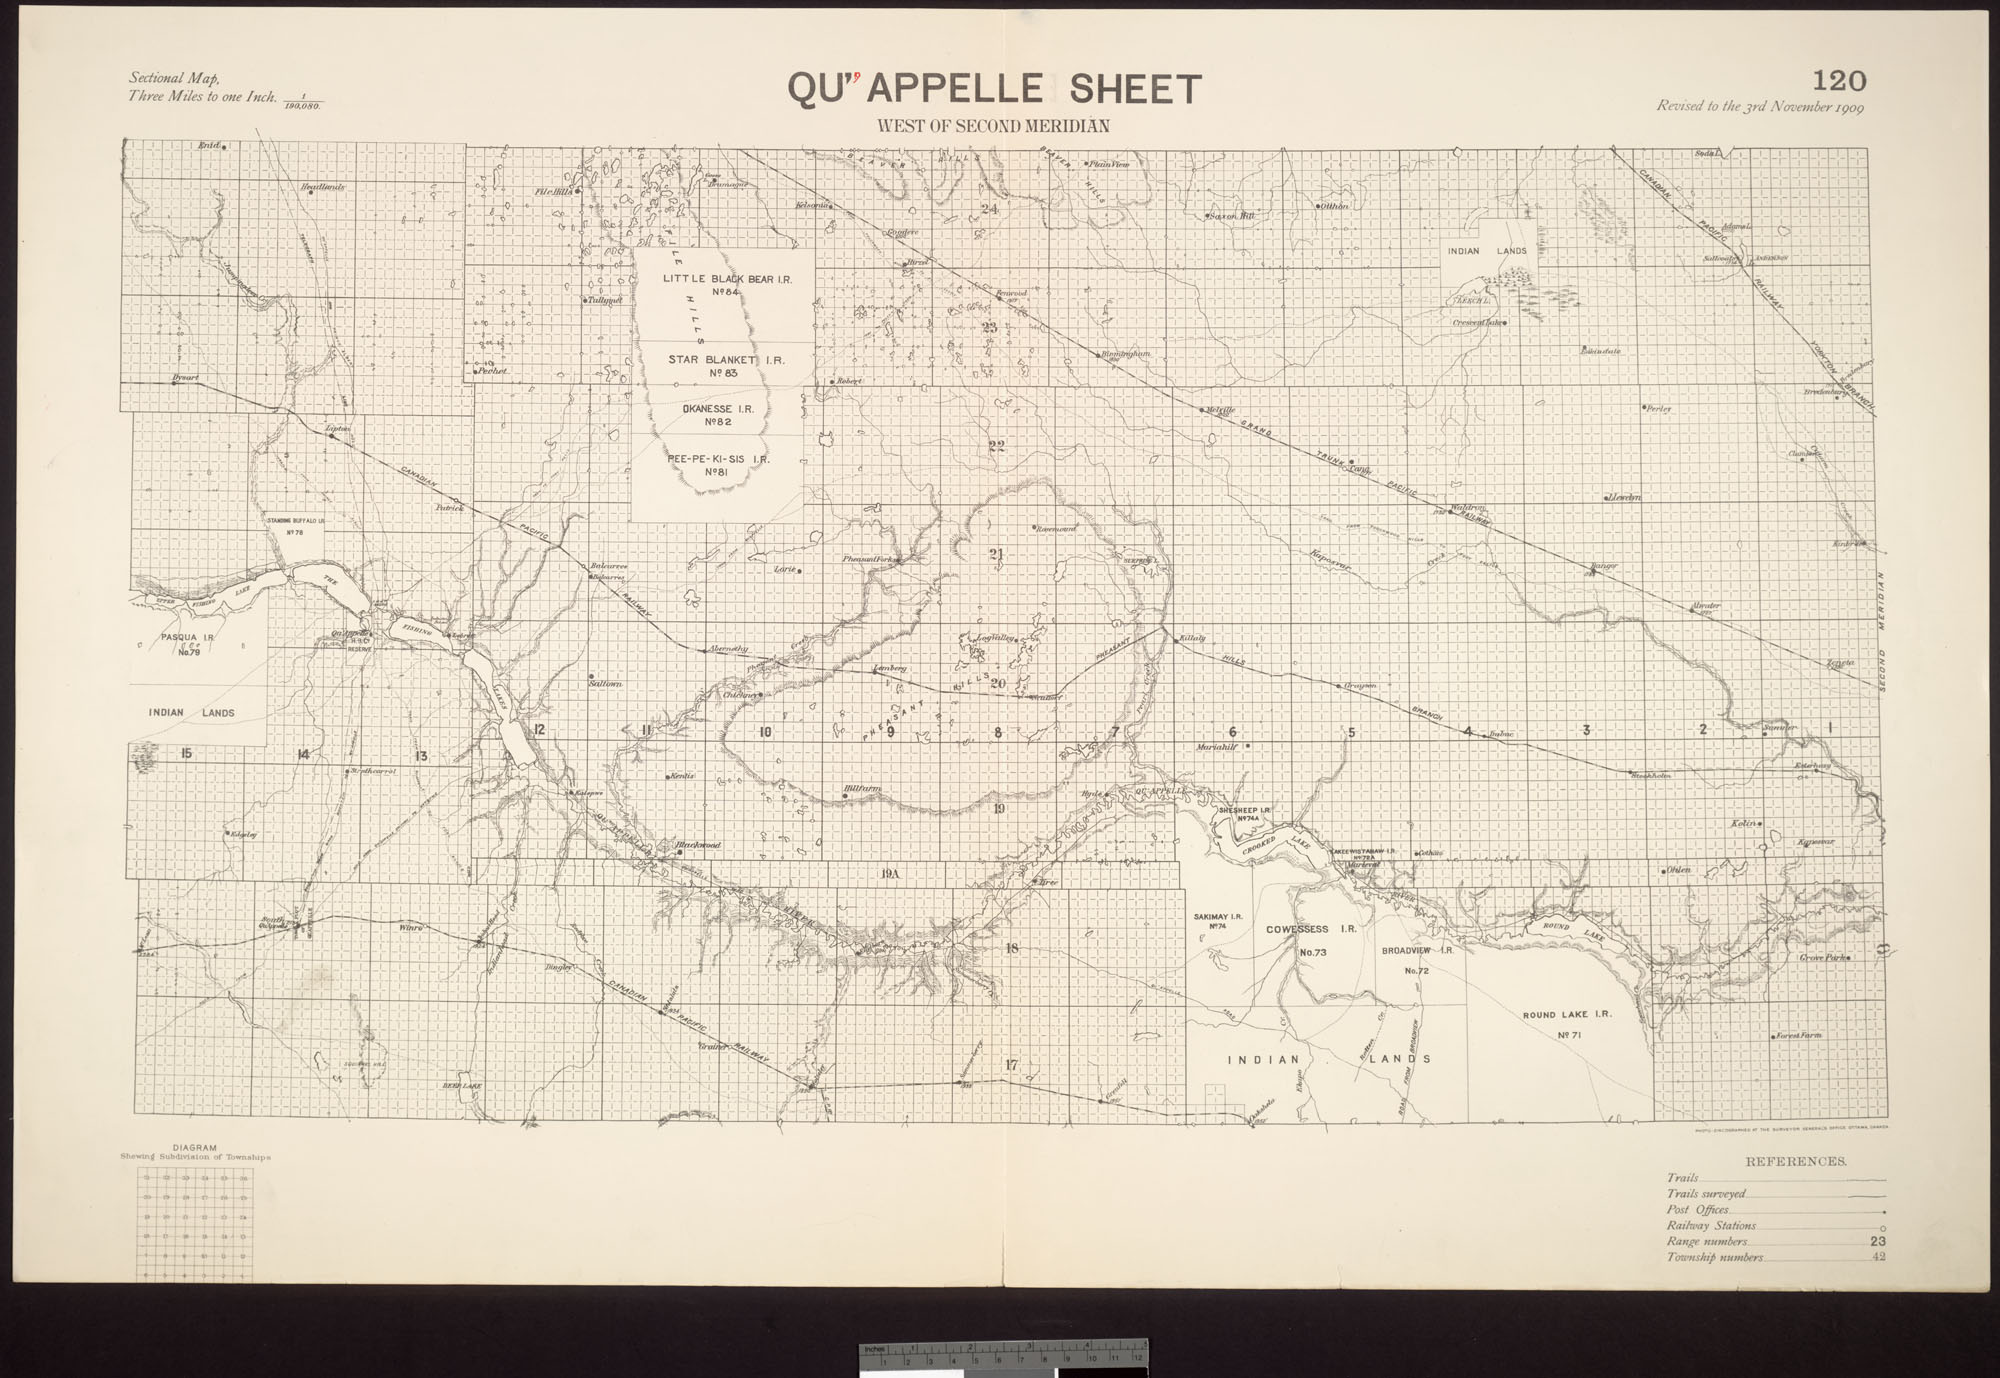 Digitized image of map no. 120, Qu'Appelle, west of the second meridian, image number e003004635